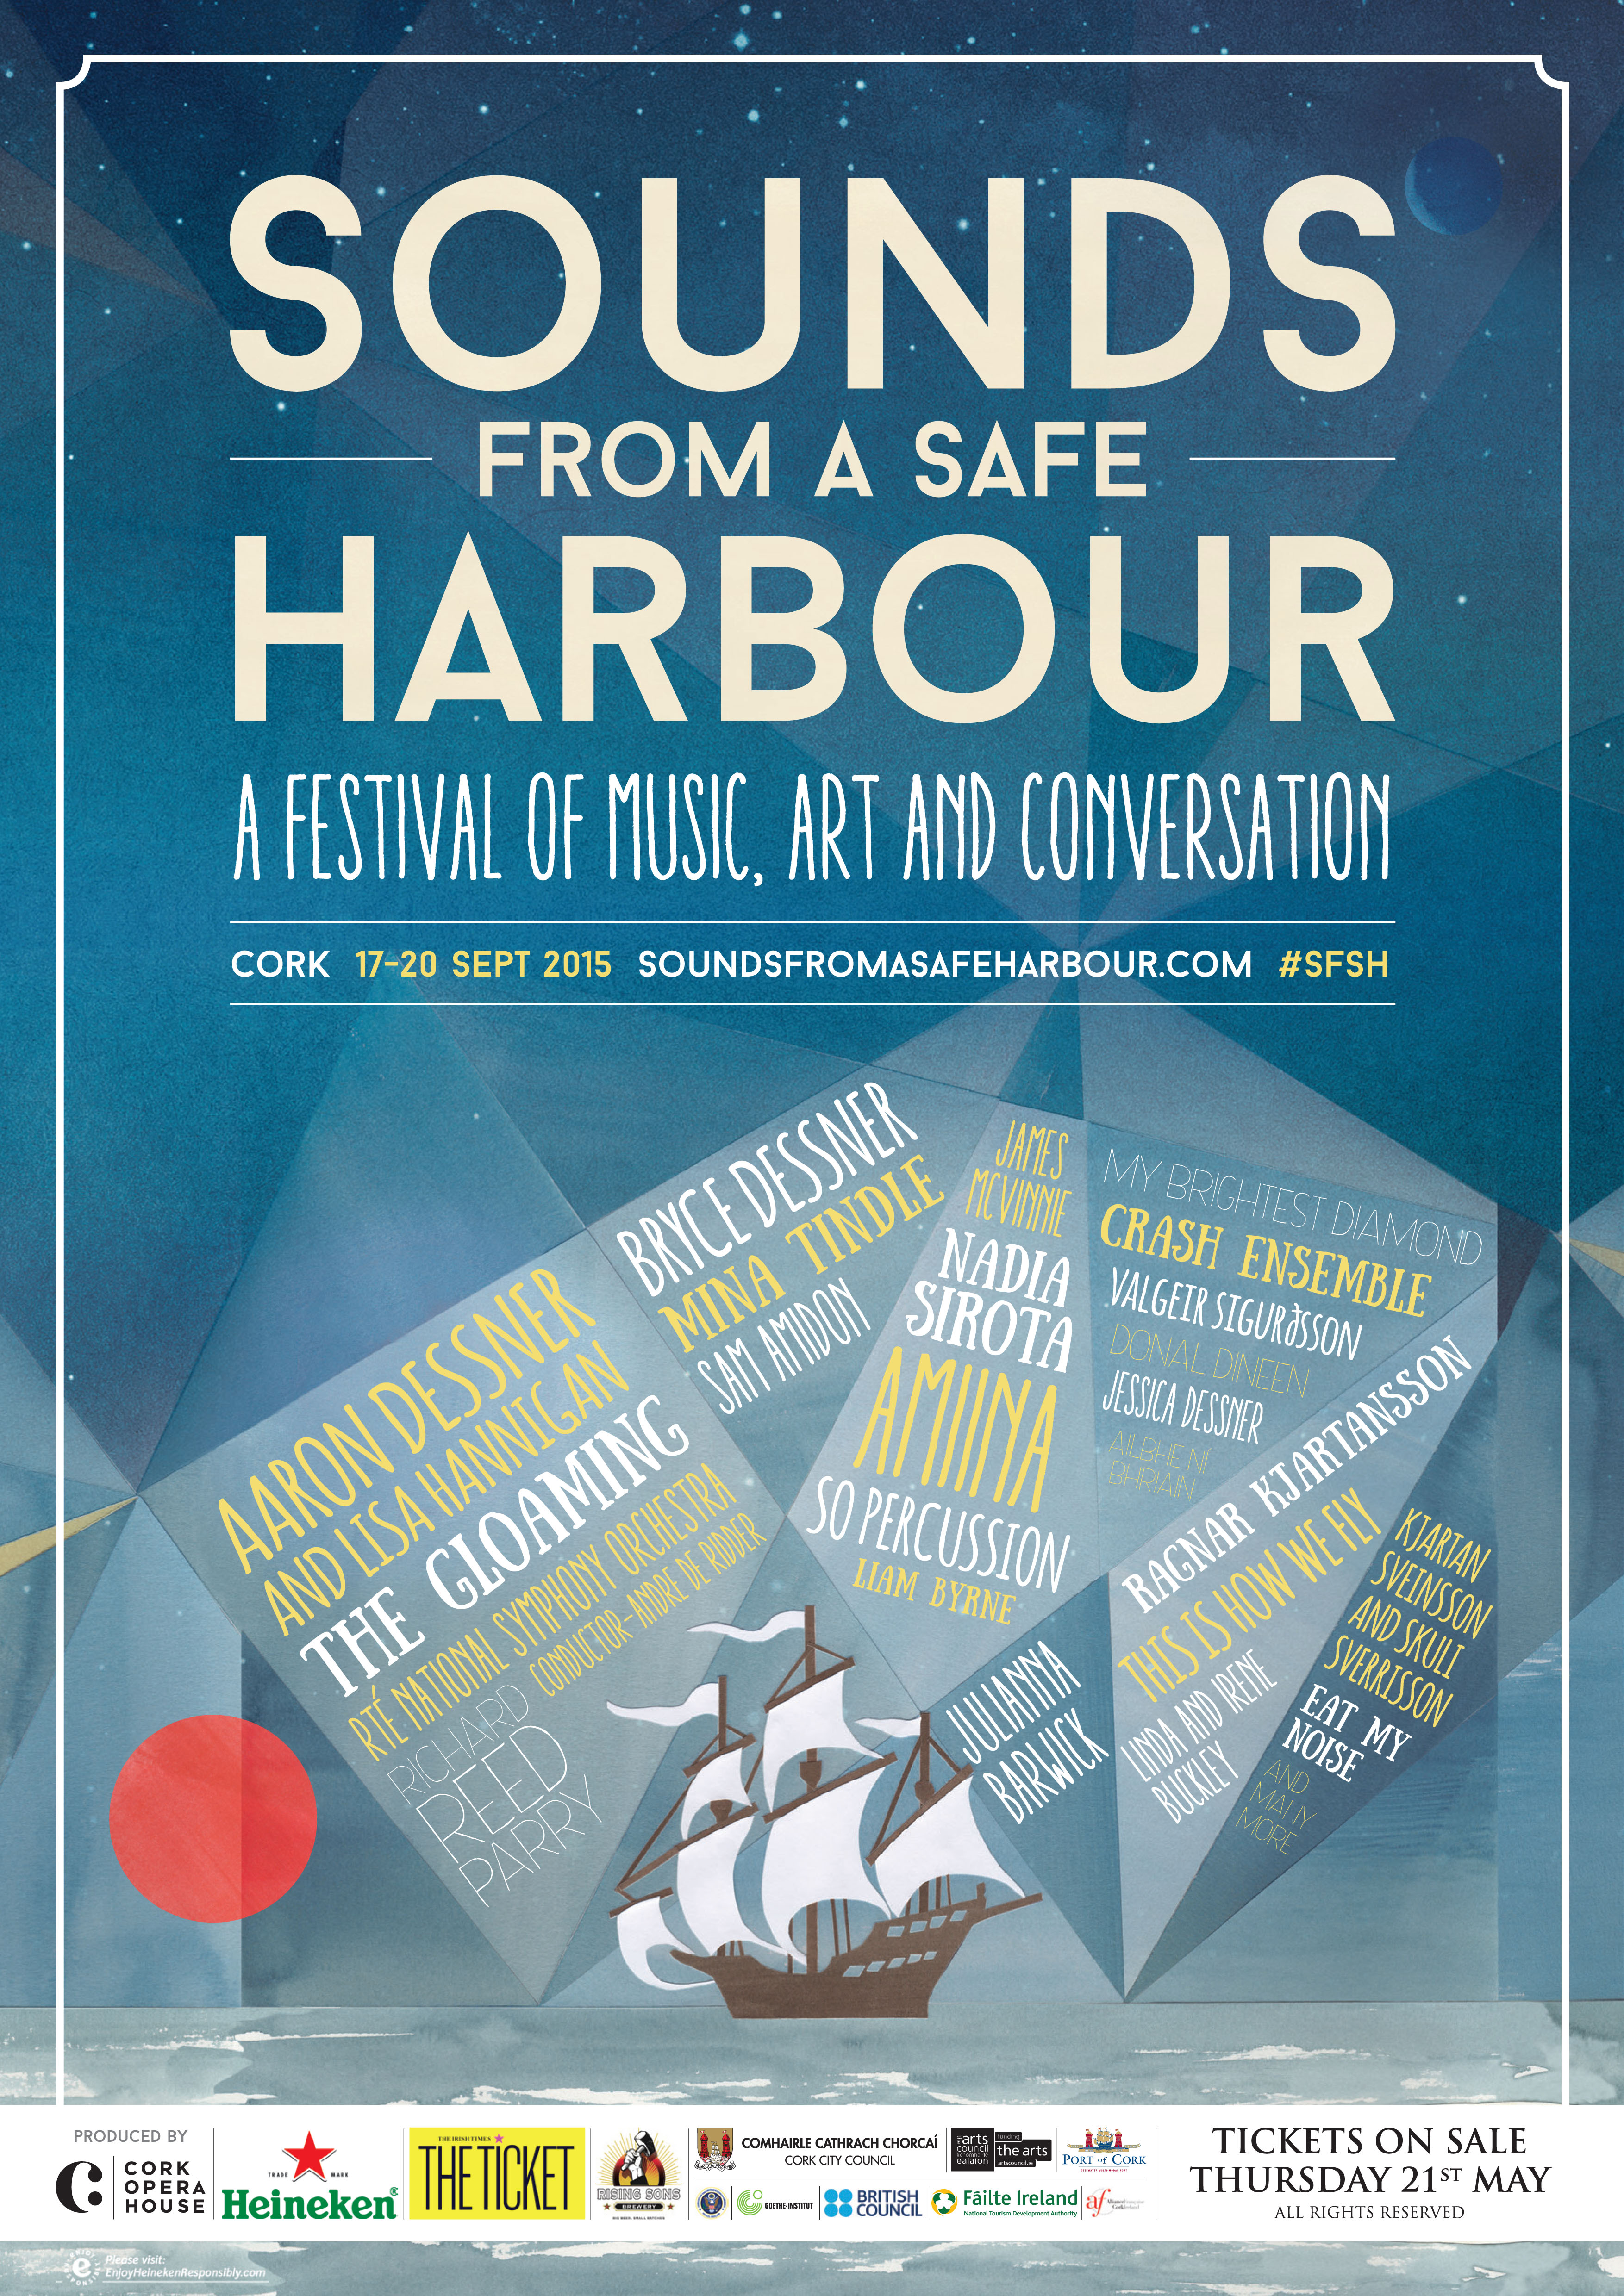 Safe Sound Album Sounds From a Safe Harbour is